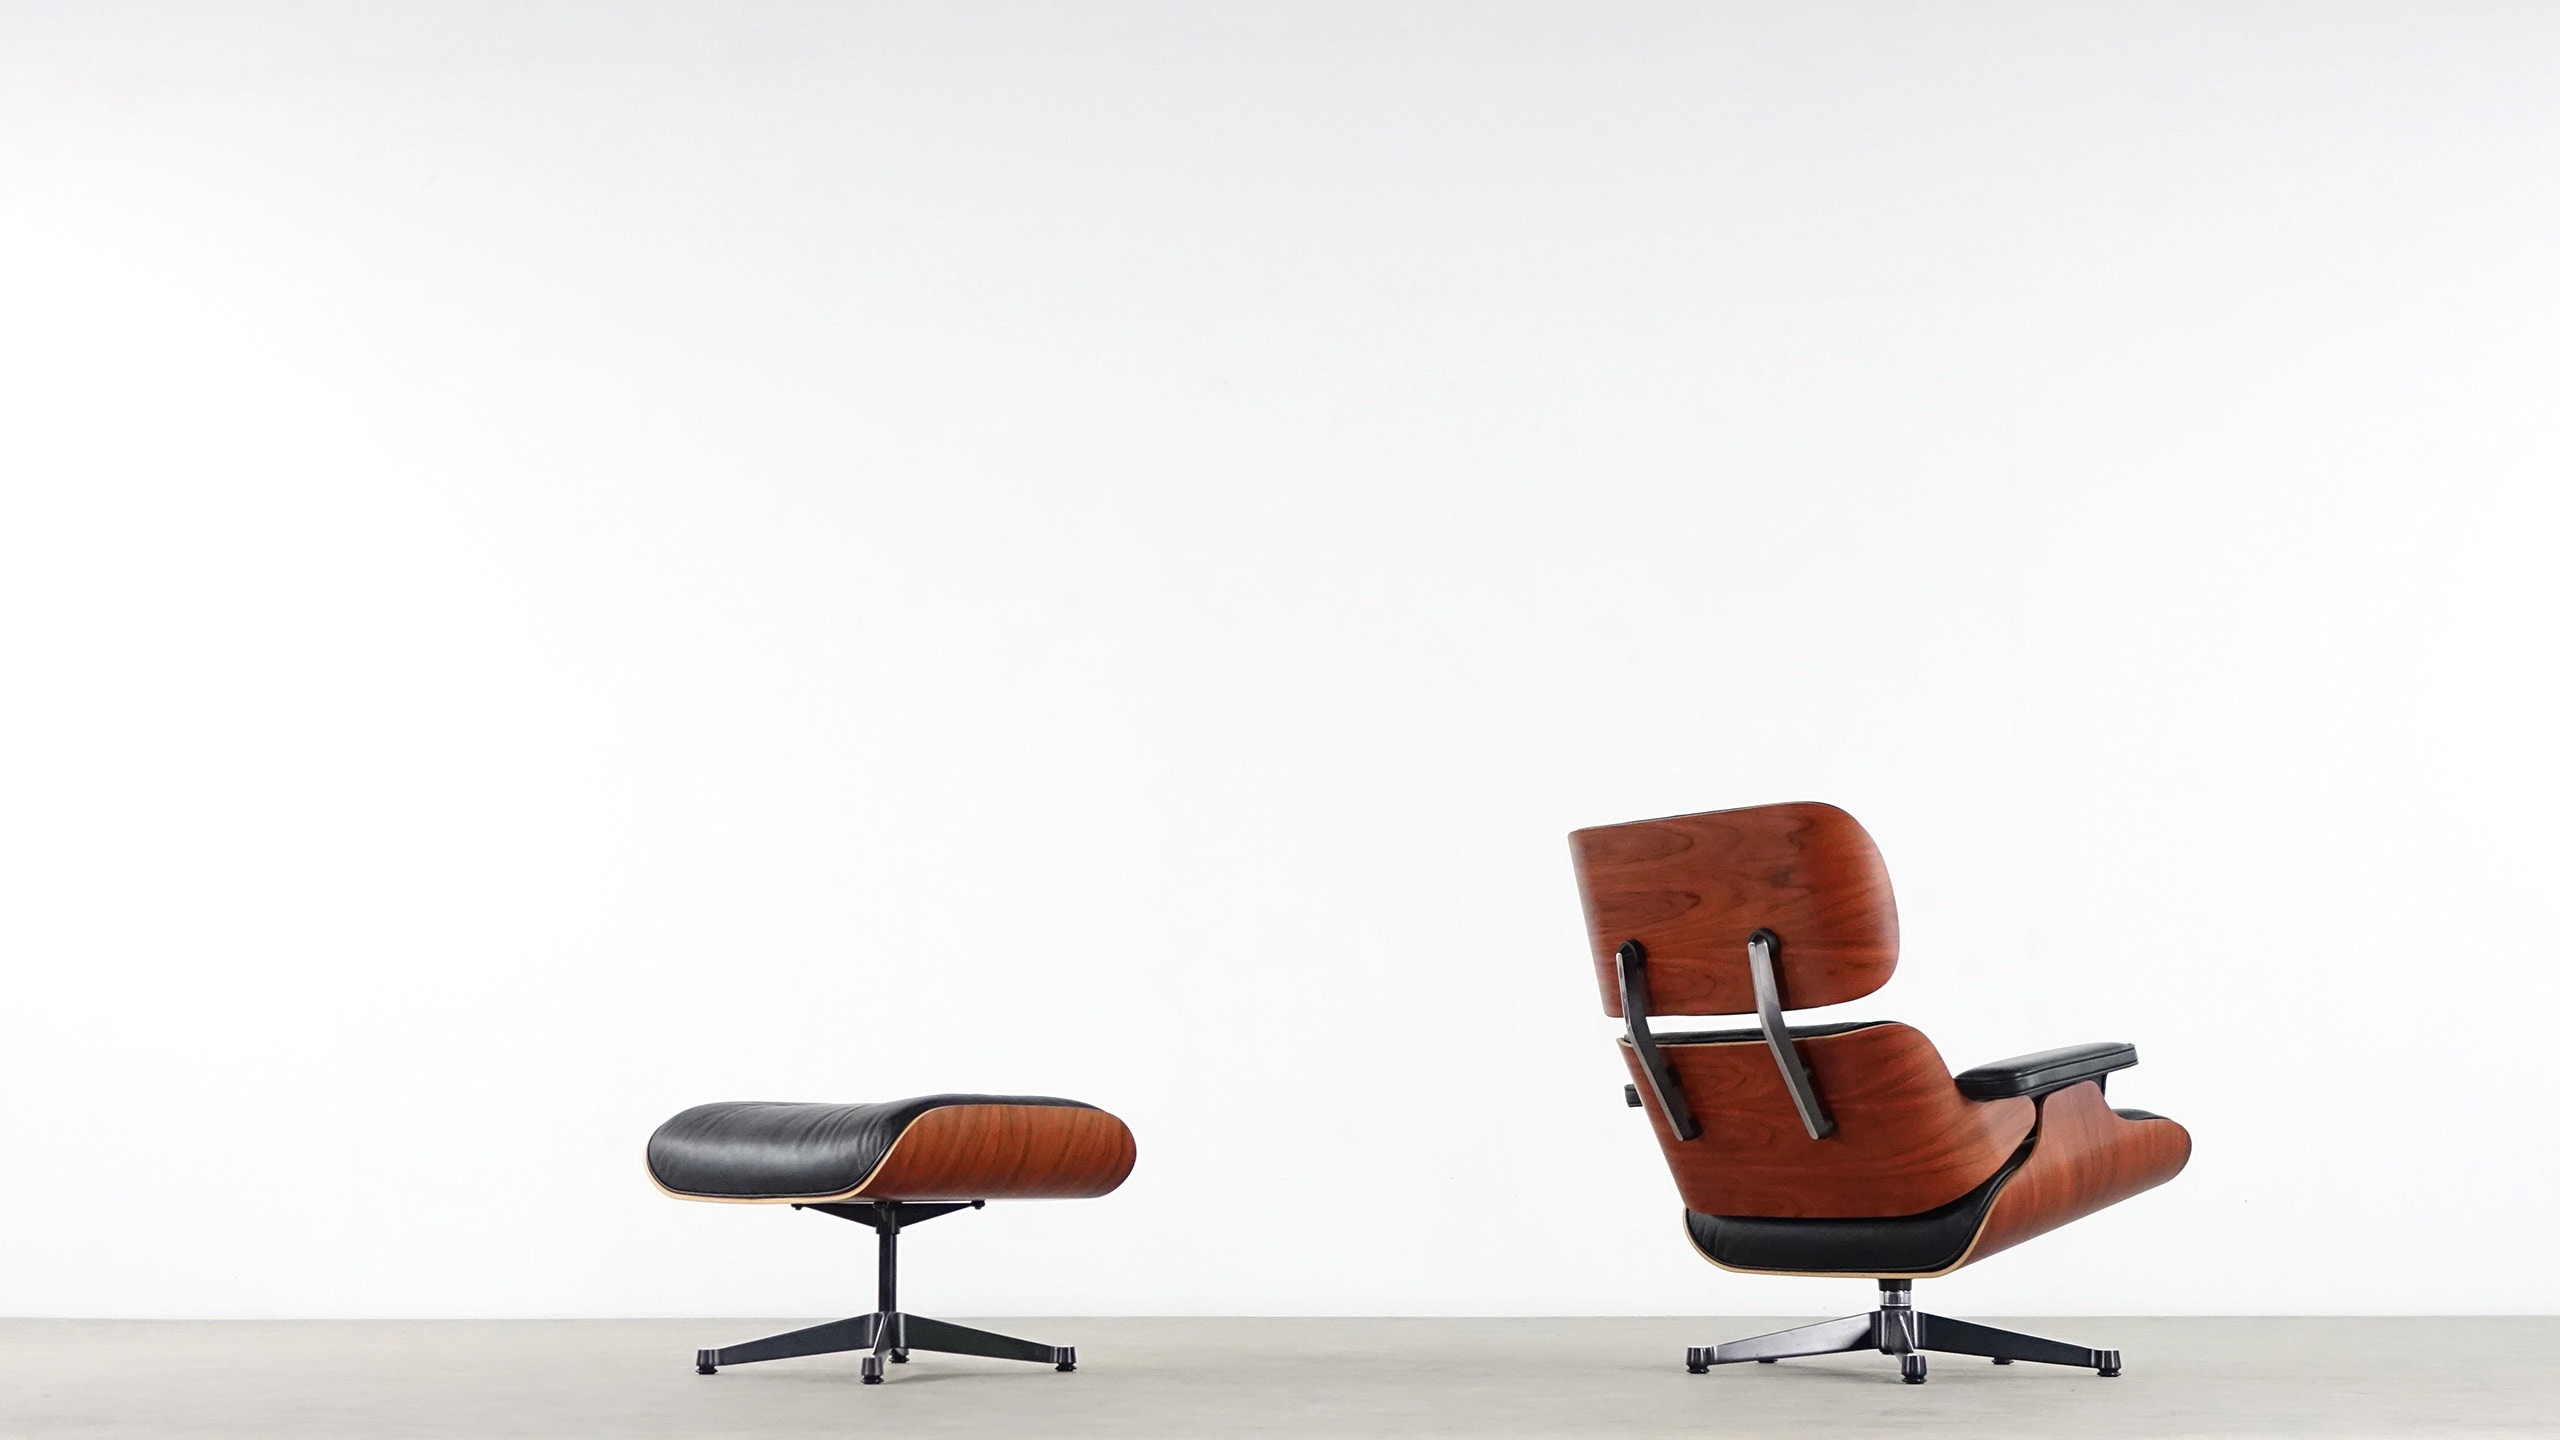 Charles eames lounge chair by vitra for Eames sessel nachbau